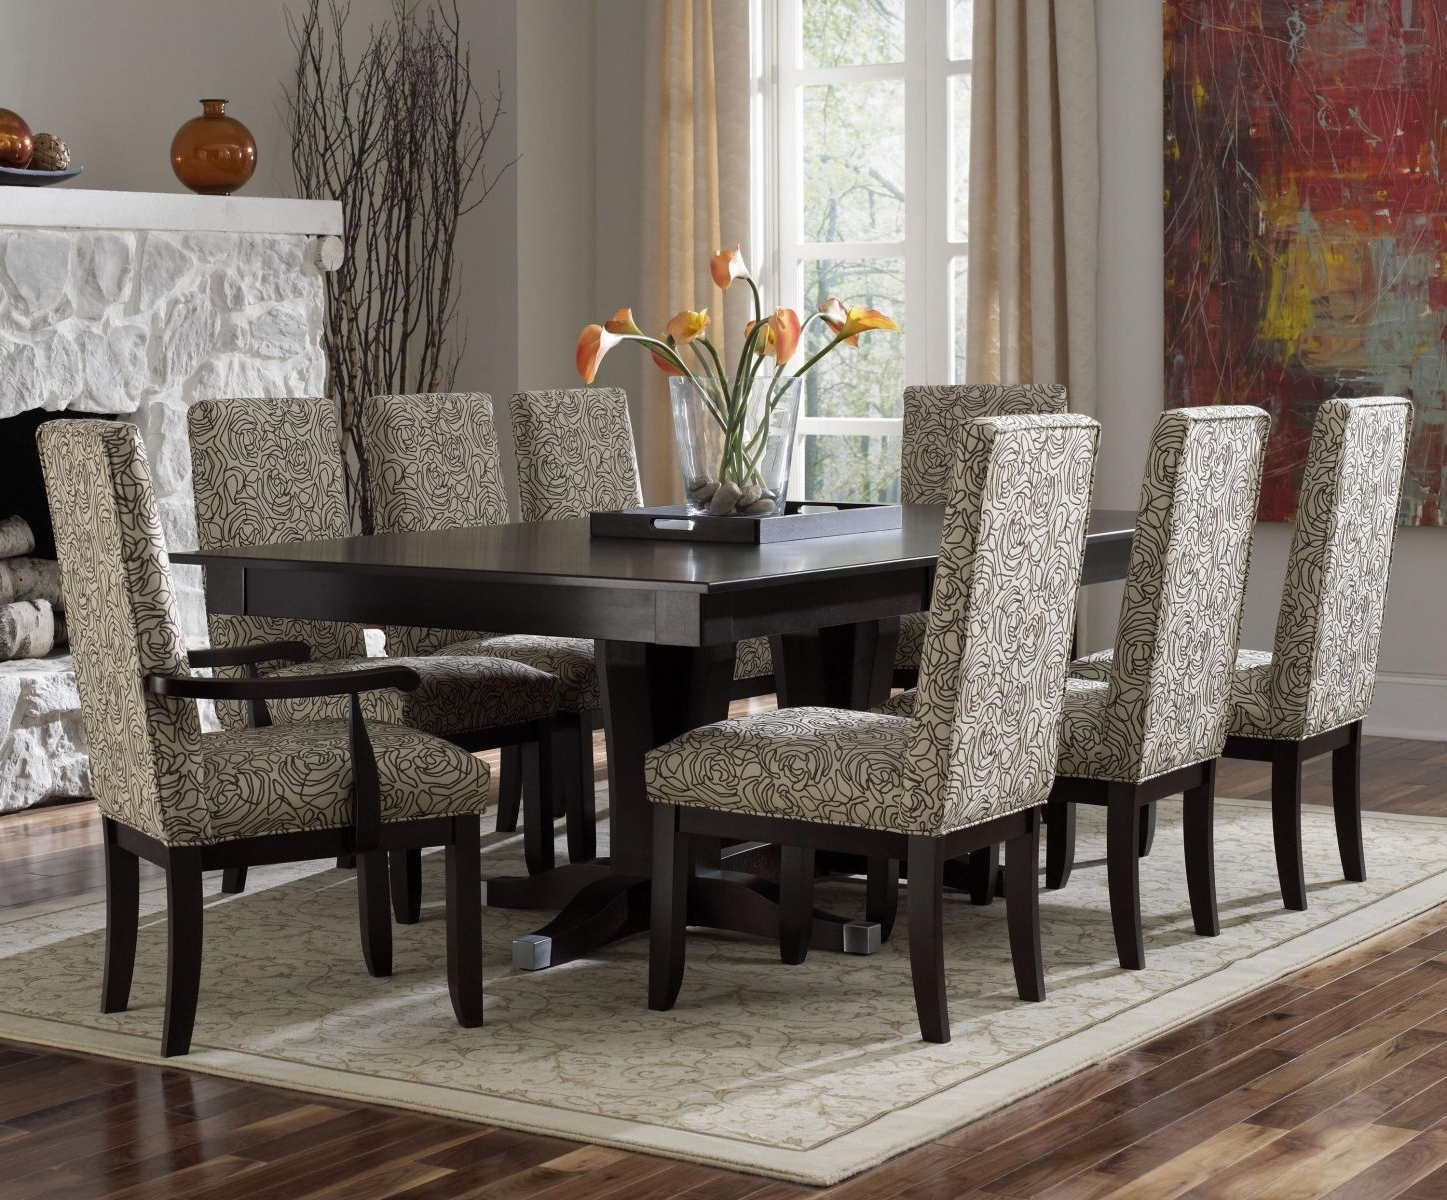 Dining Room Tables Regarding Fashionable Dining Room Contemporary Glass Dining Table Set Small Modern Dining (View 8 of 25)